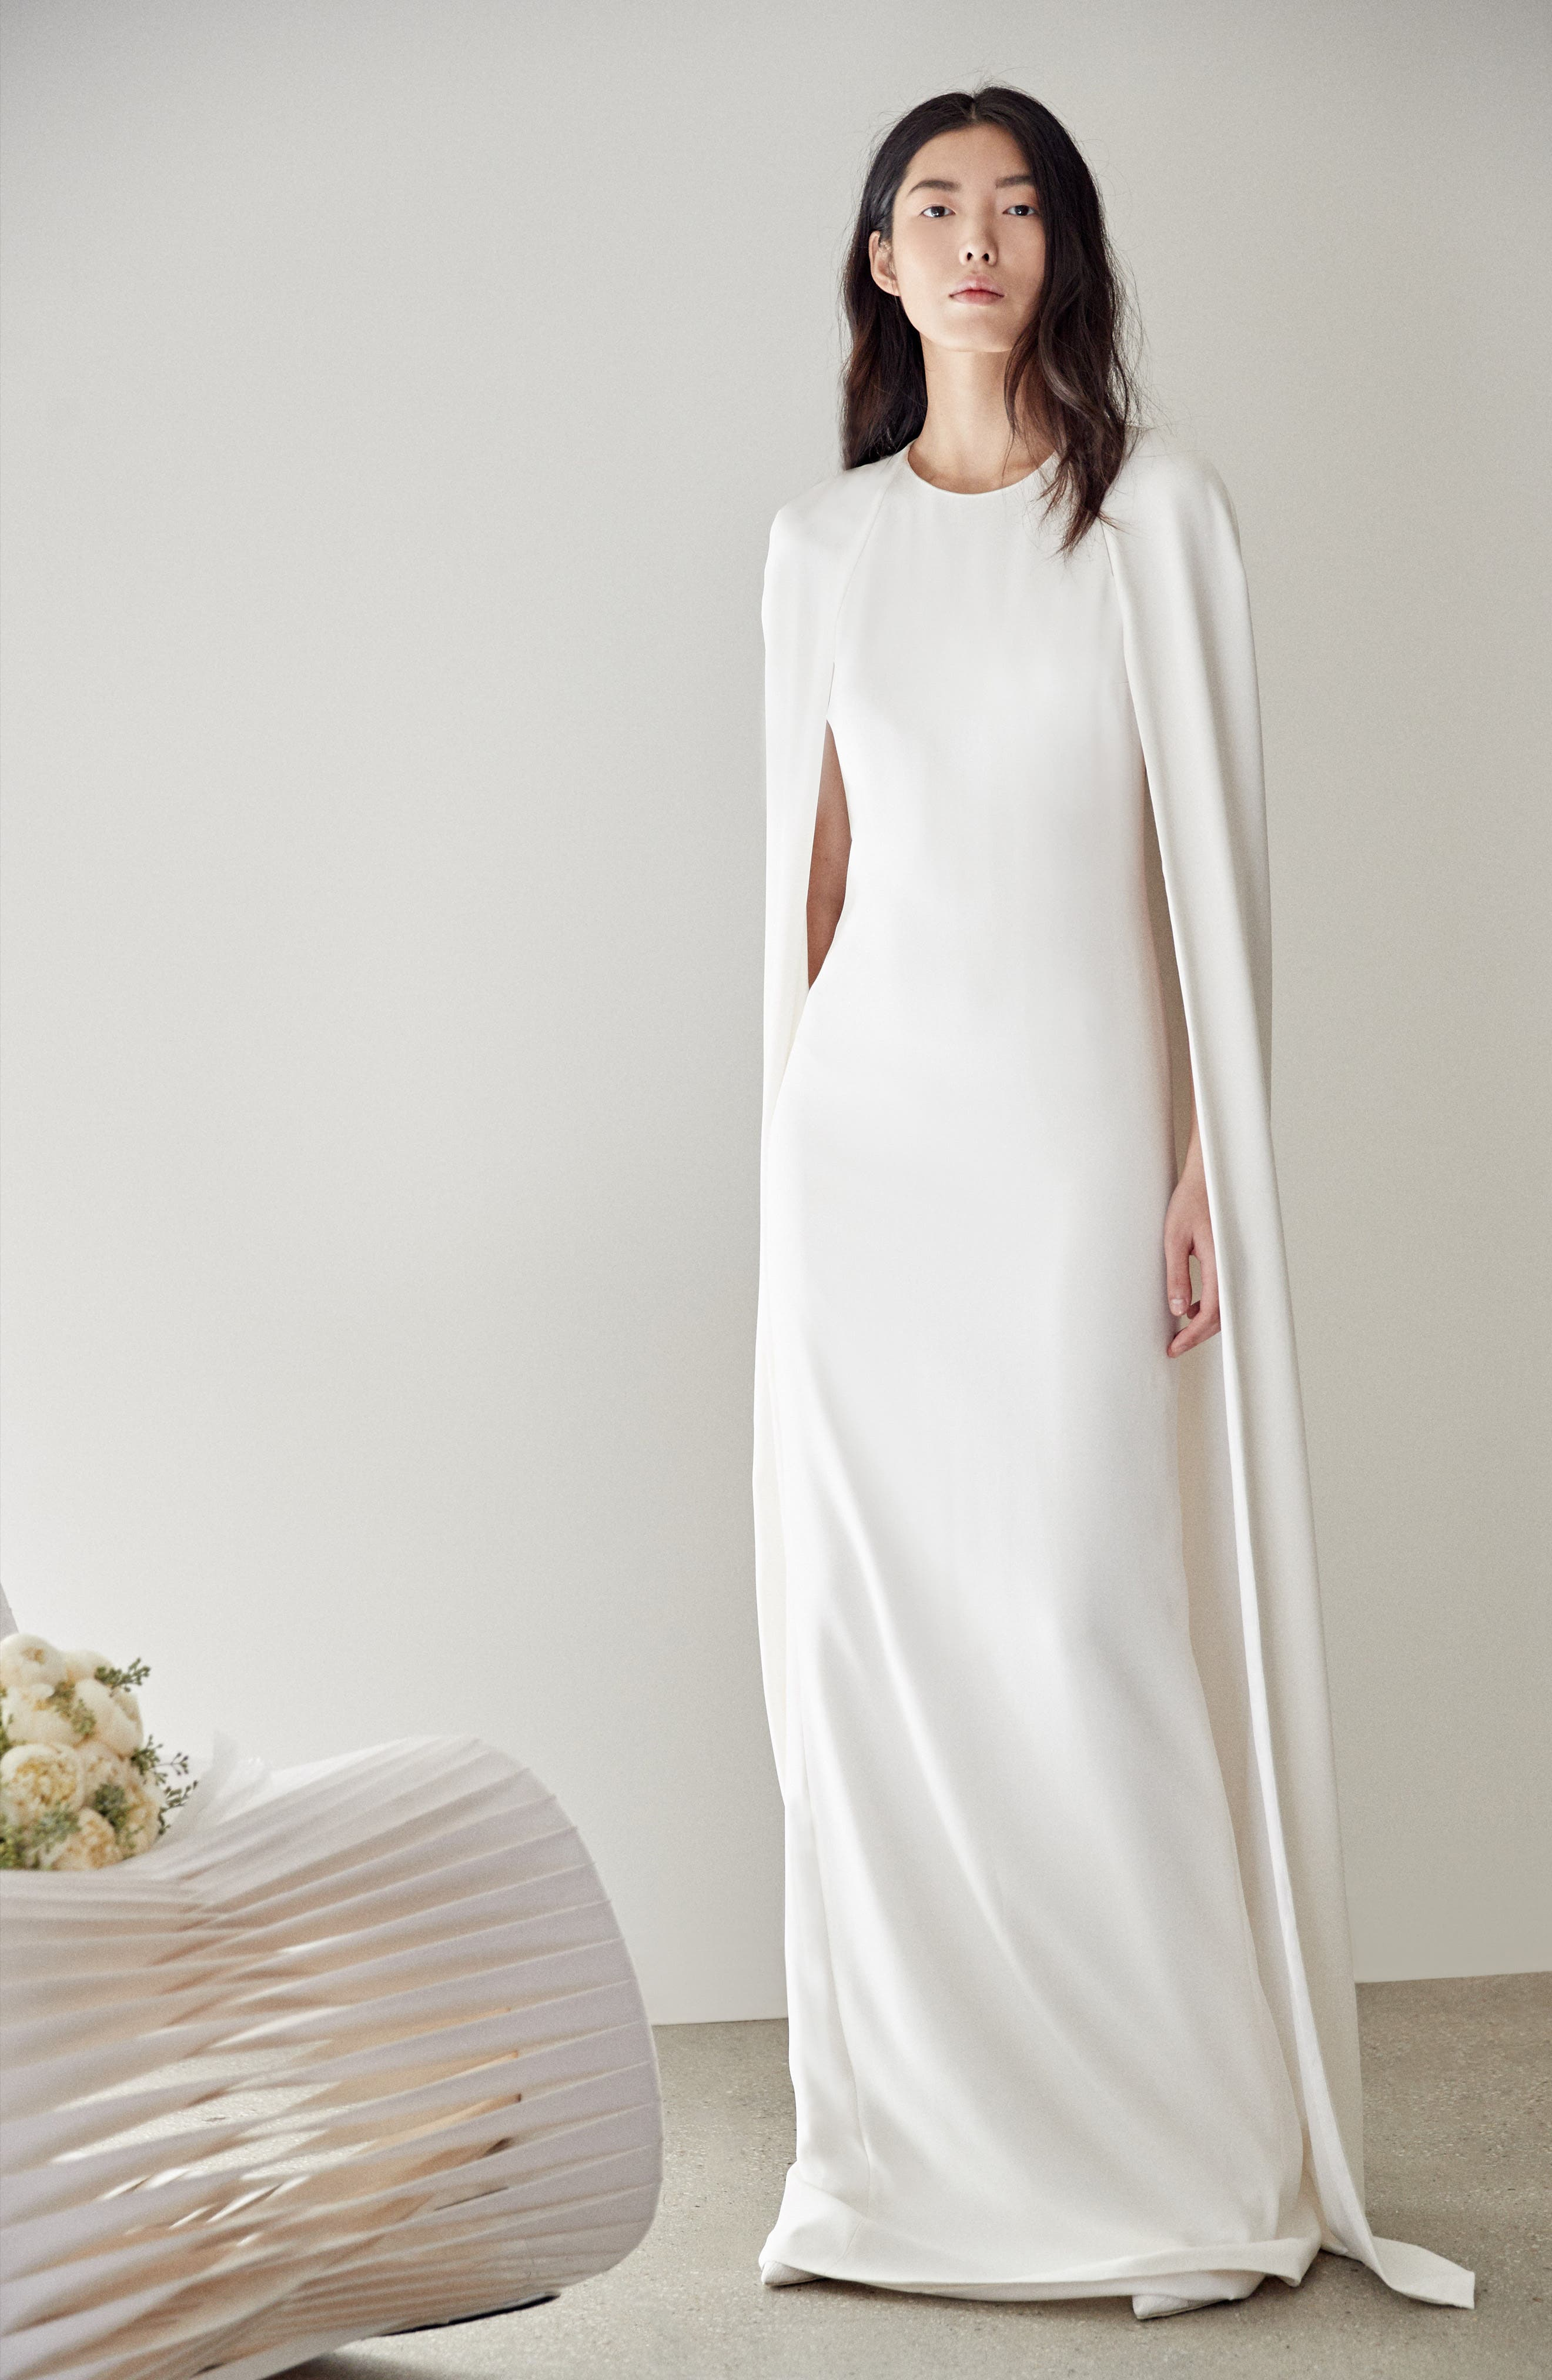 Stella Mccartney F18 Violet Cape Wedding Dress, 48 IT - White